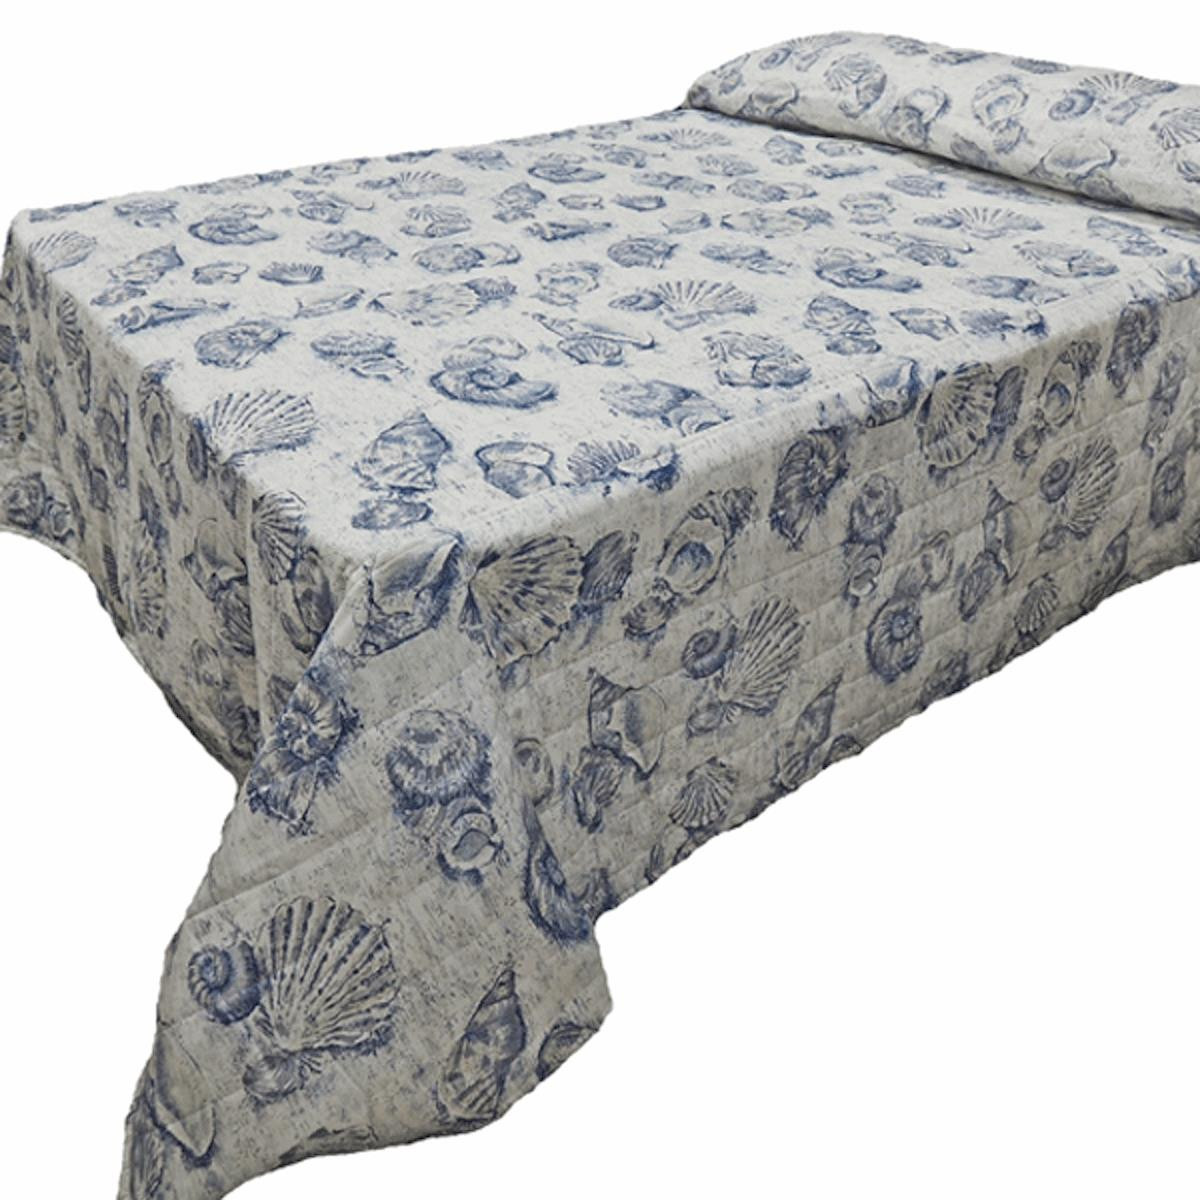 Blue Shell Bedding Collection -